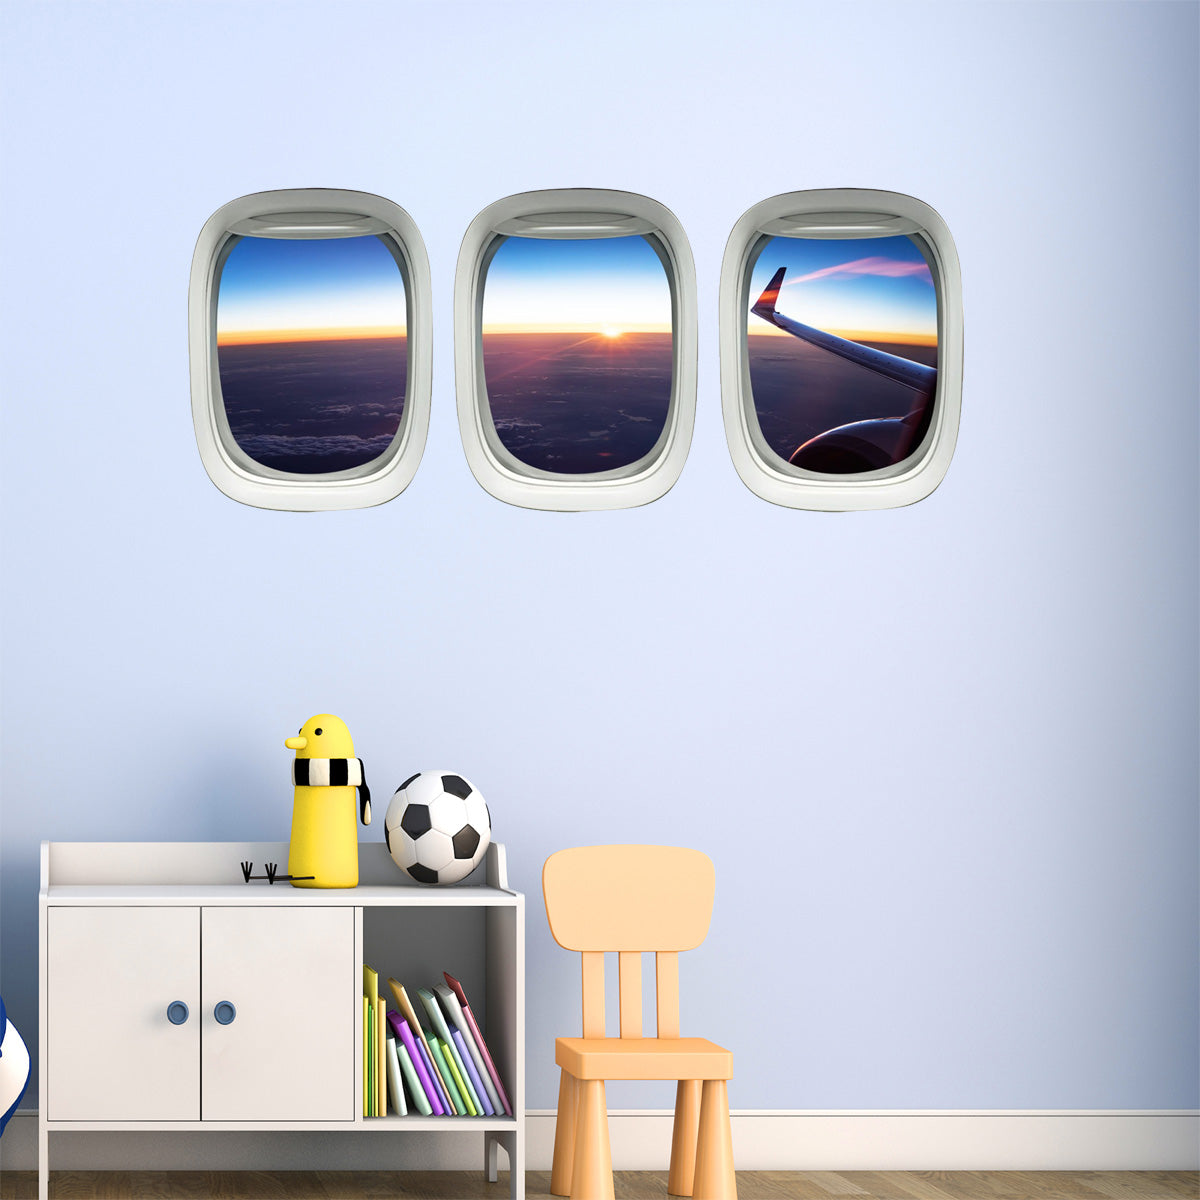 VWAQ Aviation Wall Decal, Airplane Wing Stickers - Aircraft Wall Art Decor -PPW39 - VWAQ Vinyl Wall Art Quotes and Prints